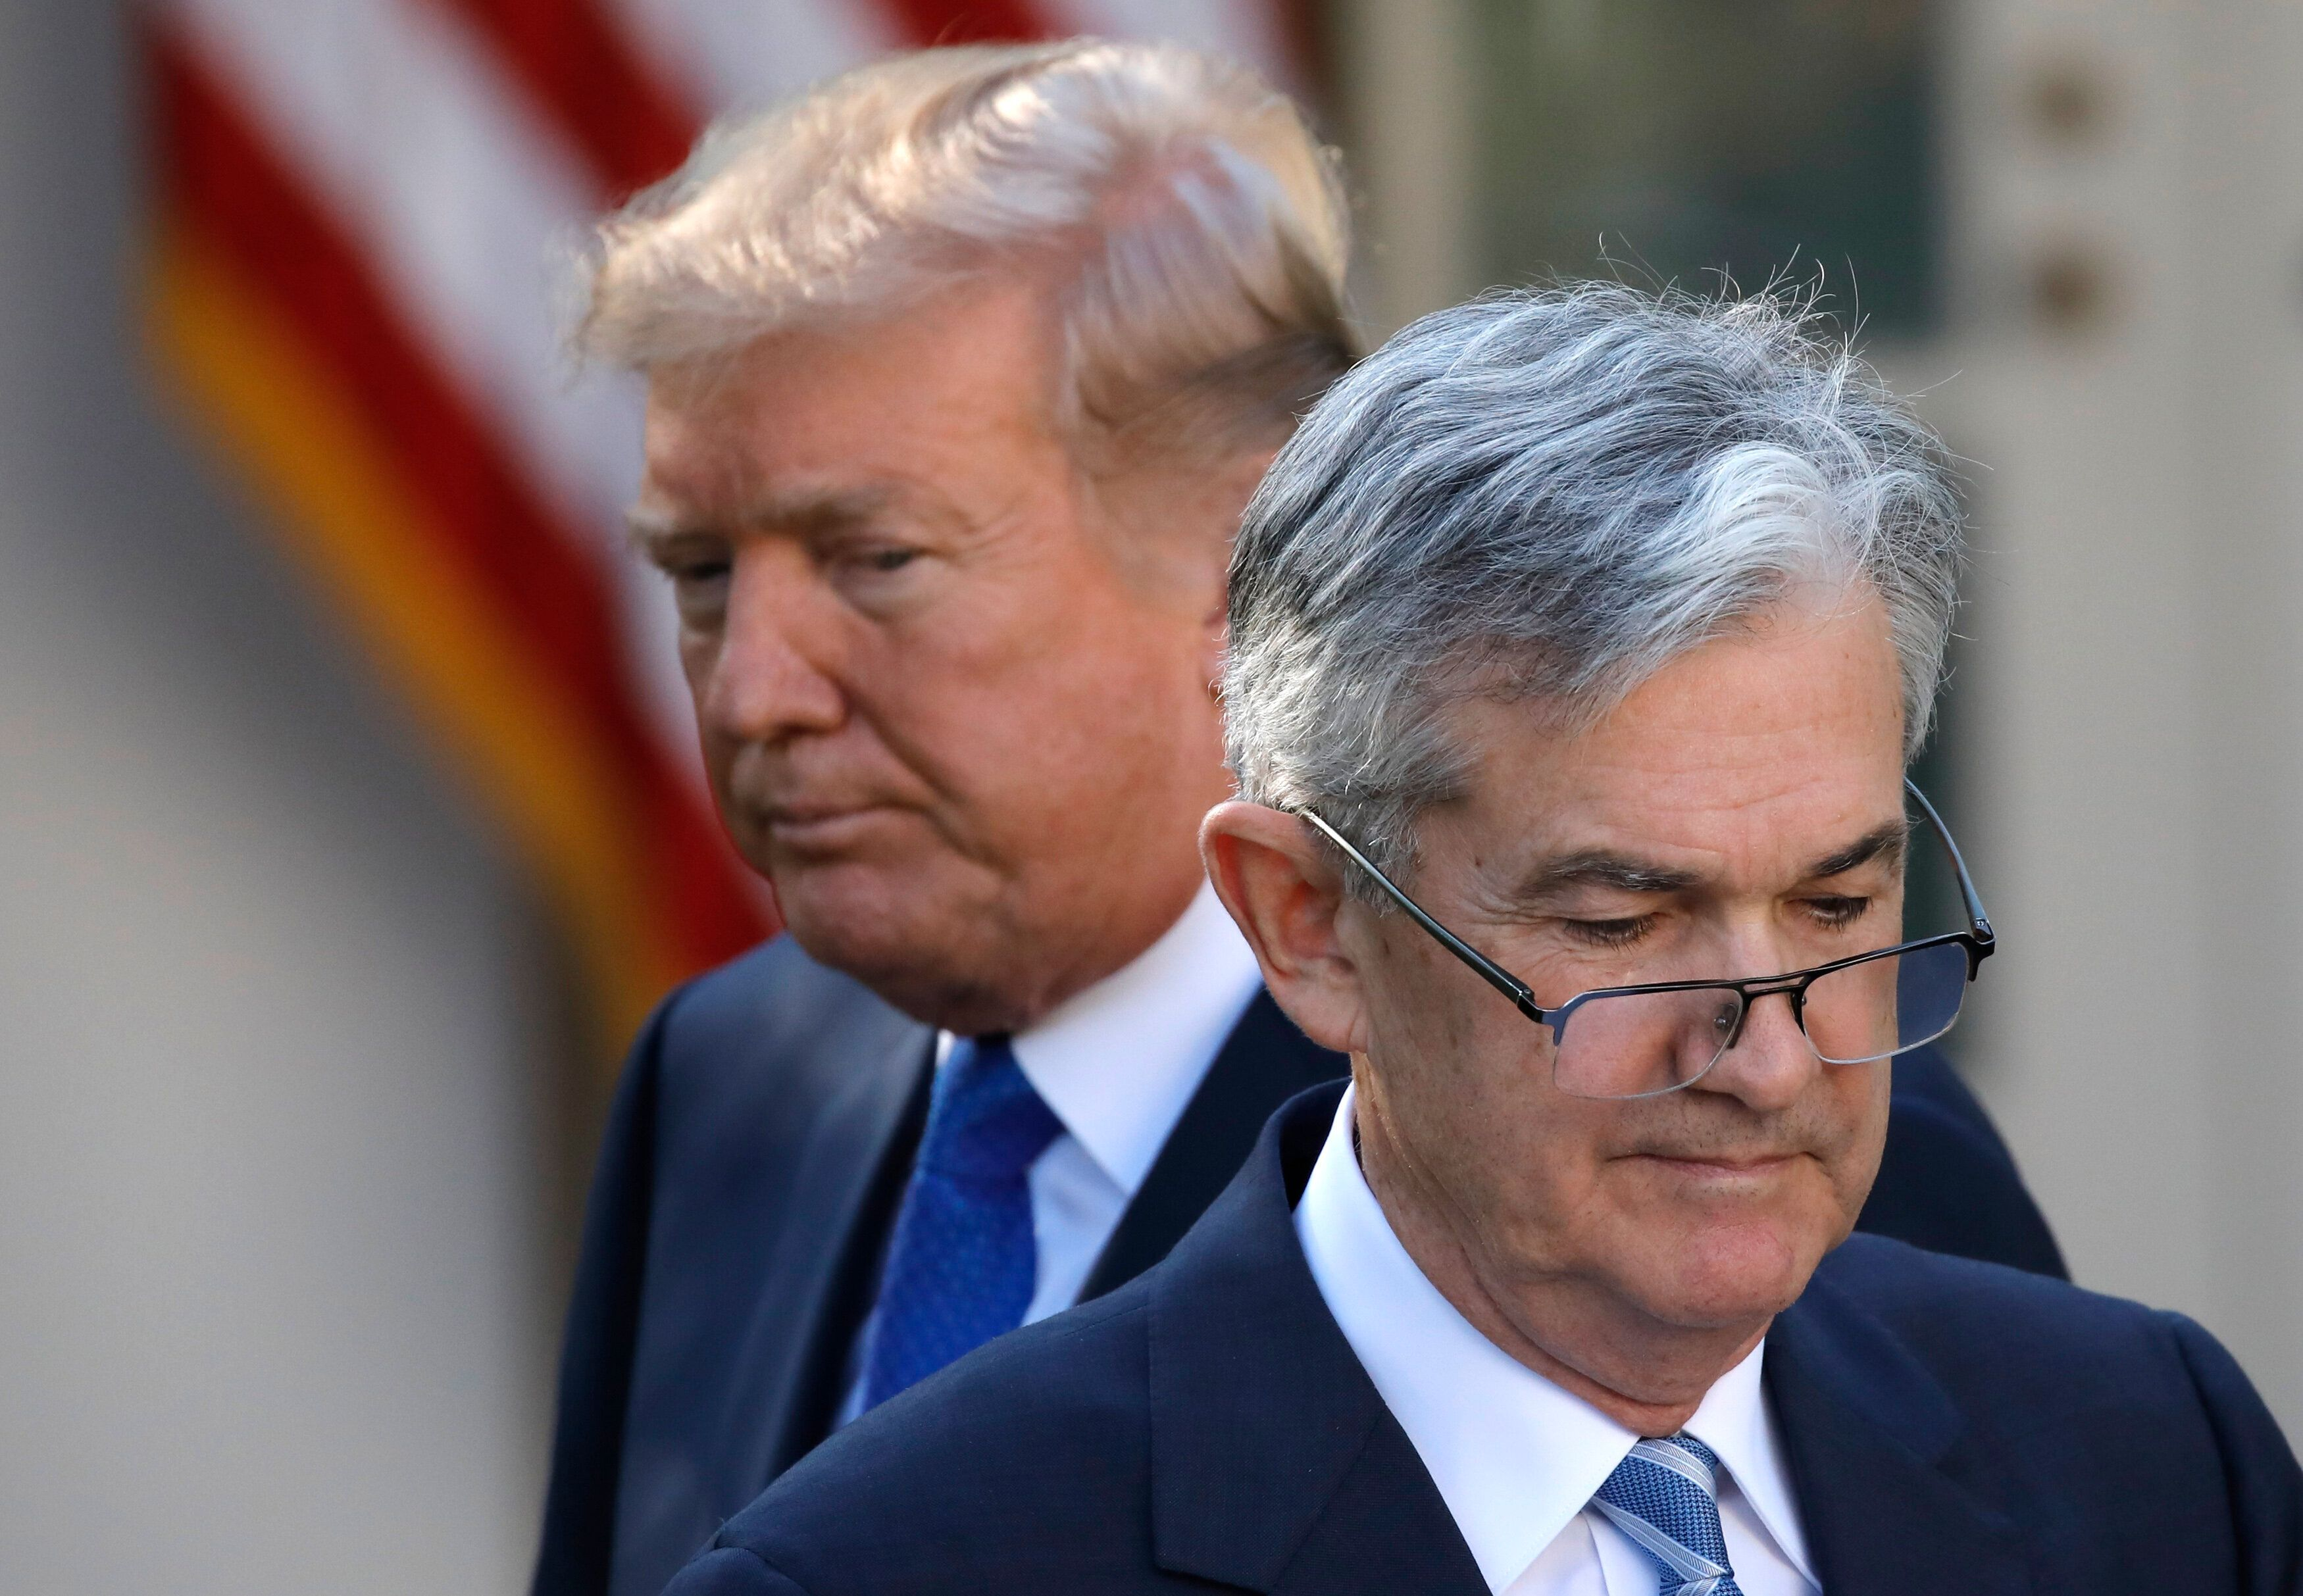 President Donald Trump looks on as Jerome Powell, then his nominee to become chairman of the Federal Reserve, prepares to spe